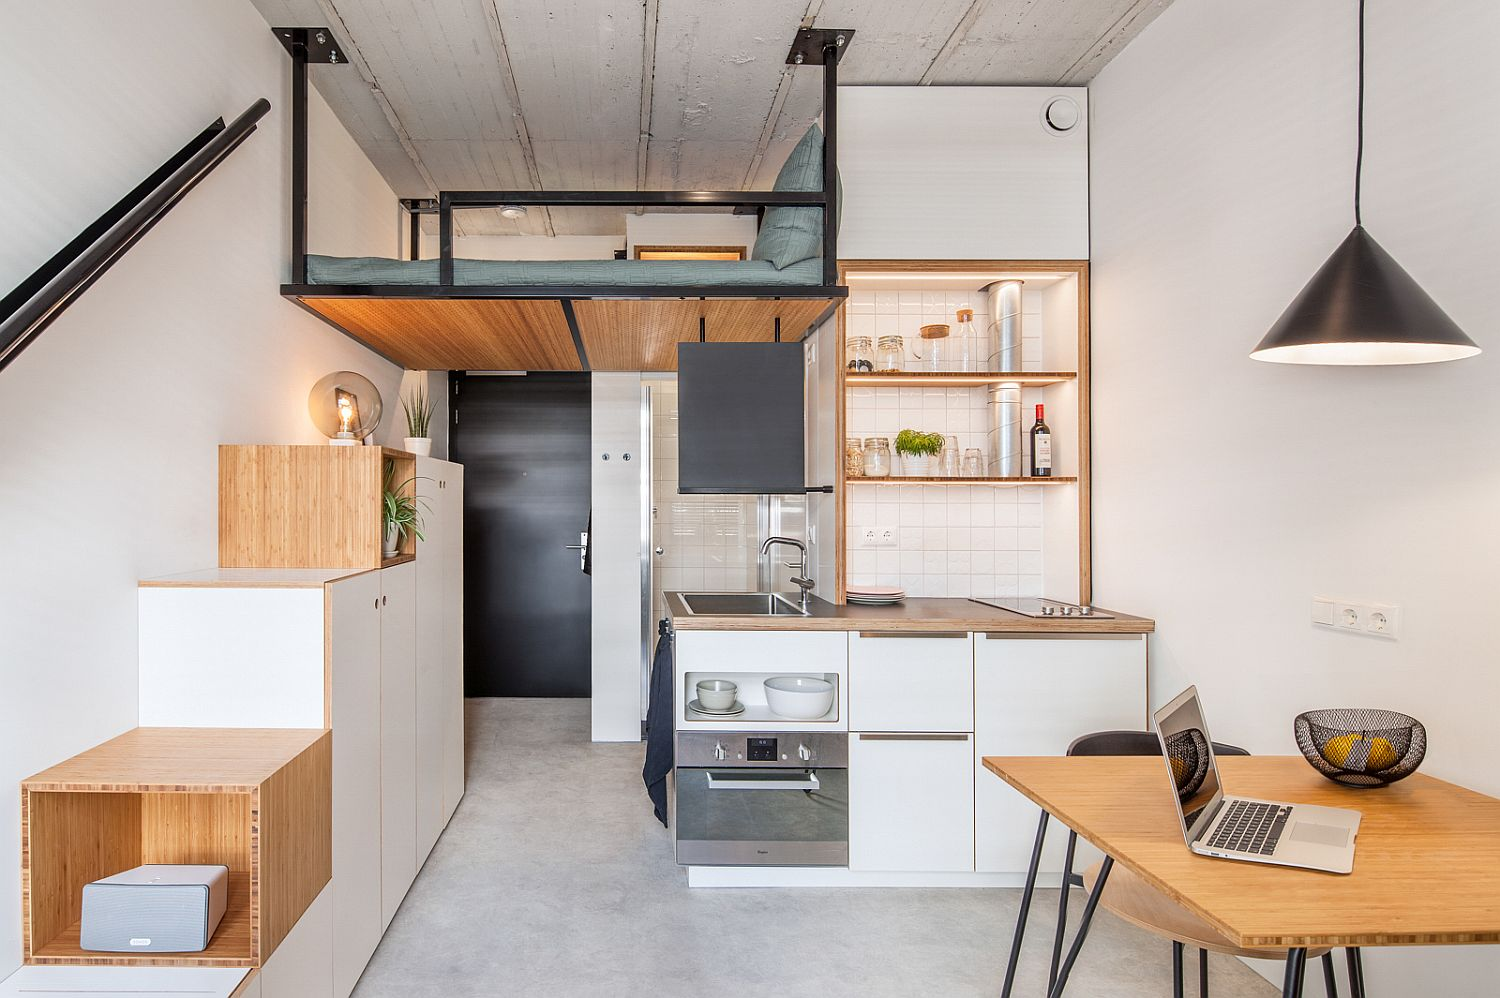 White is the perfect color choice for the uber-tiny kitchen